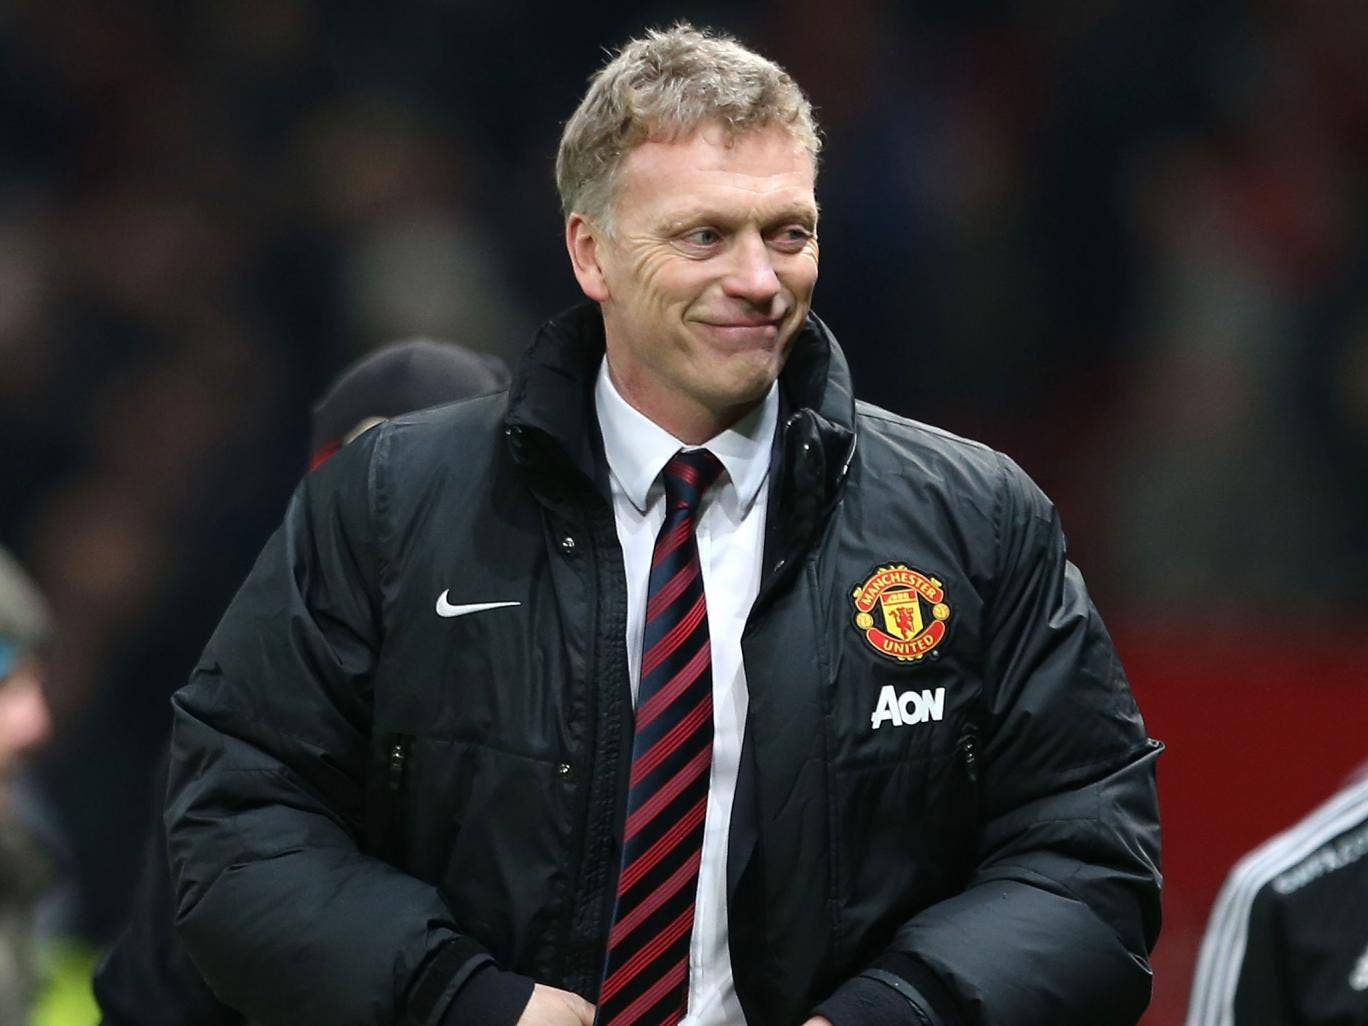 David Moyes smiles after Manchester United beat Swansea 2-0